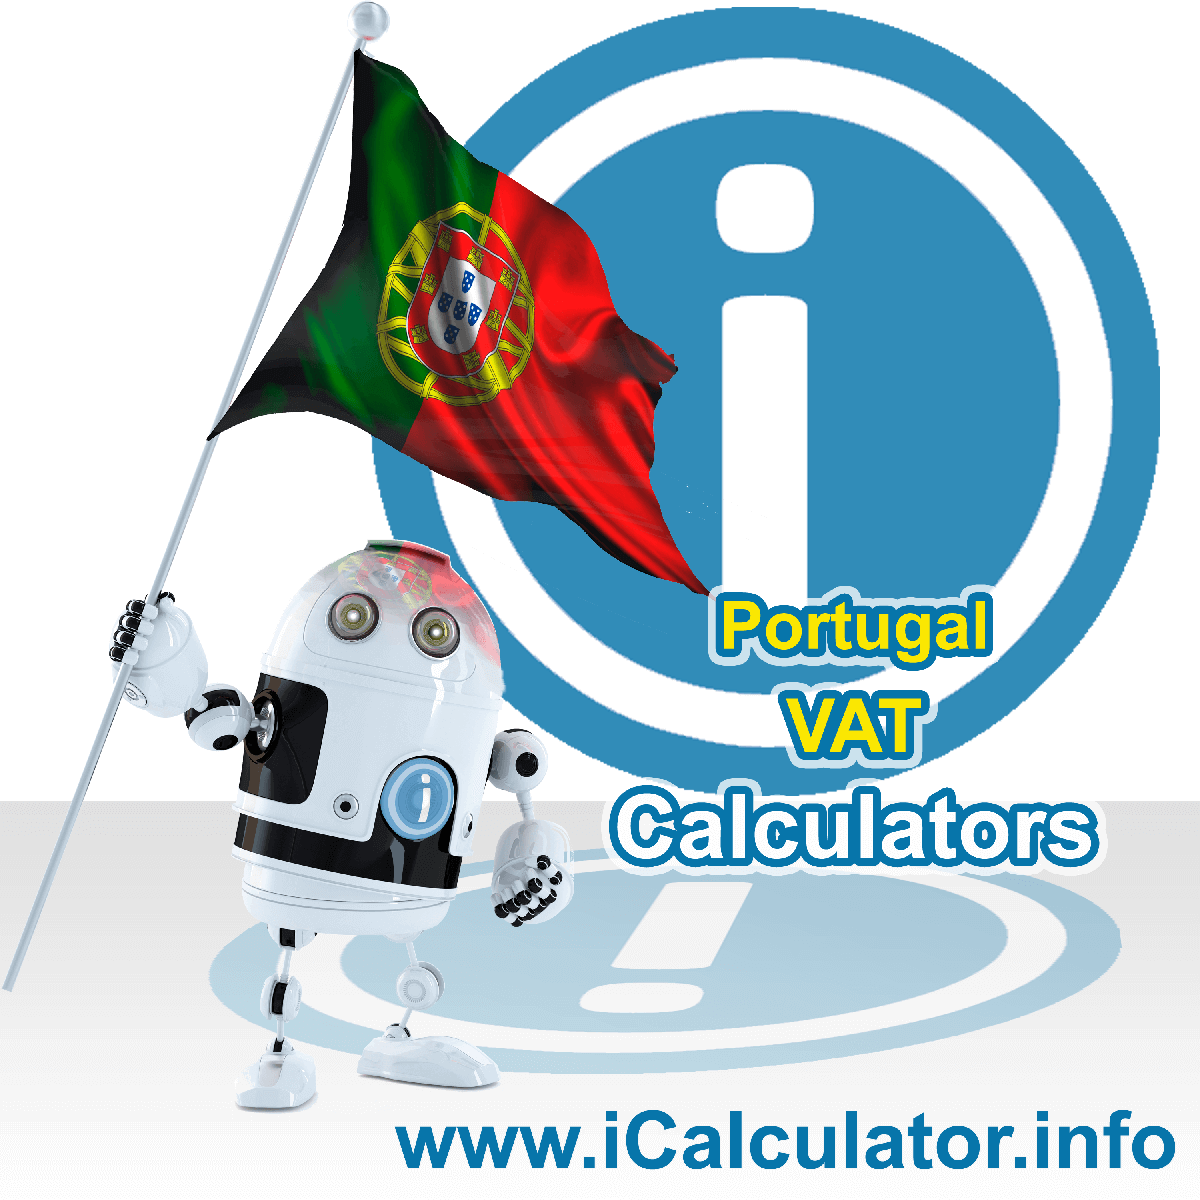 Portugal VAT Calculator. This image shows the Portugal flag and information relating to the VAT formula used for calculating Value Added Tax in Portugal using the Portugal VAT Calculator in 2020